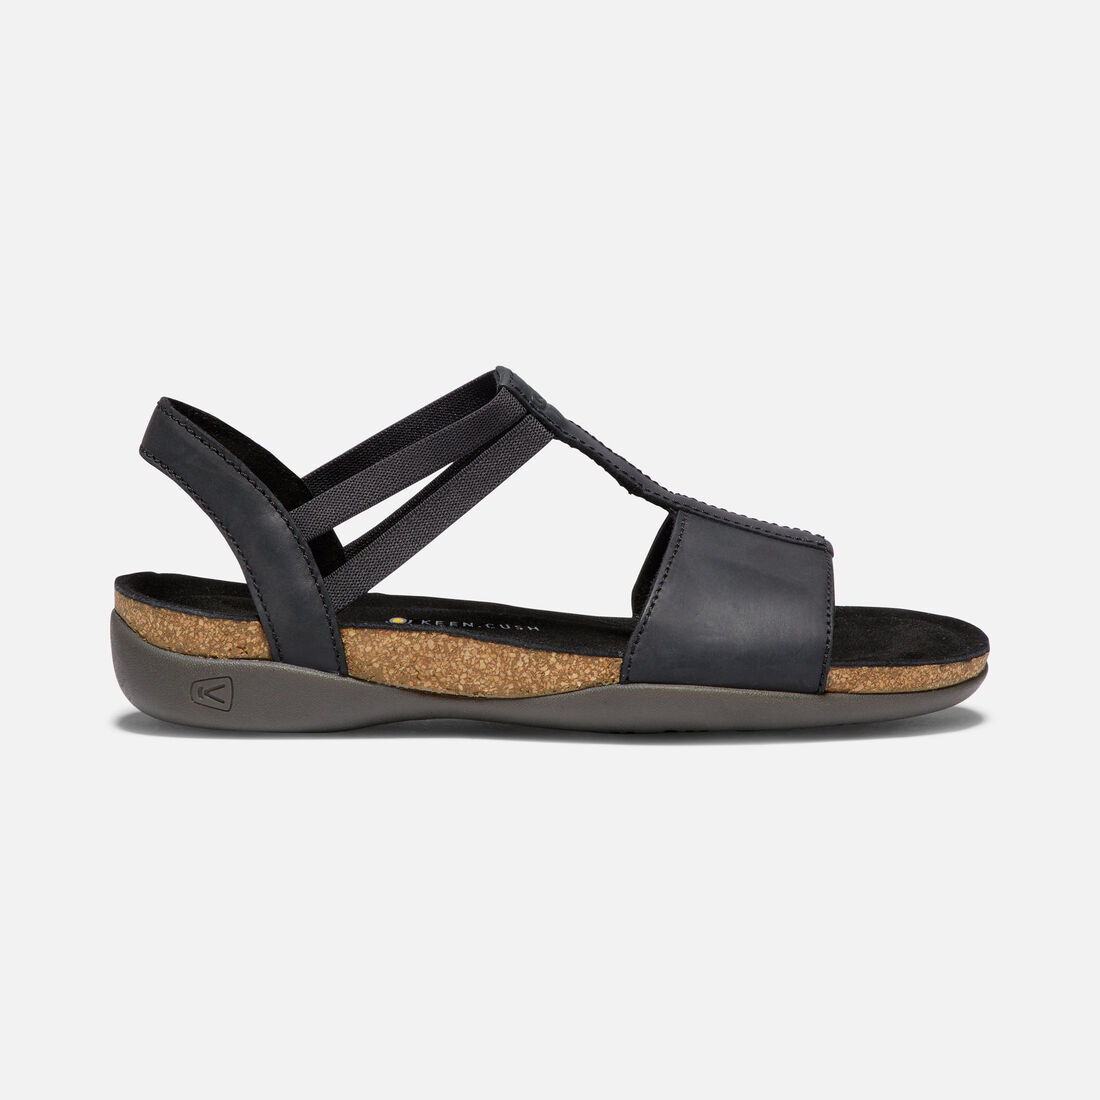 Women's ANA CORTEZ T-STRAP in BLACK/BLACK - large view.